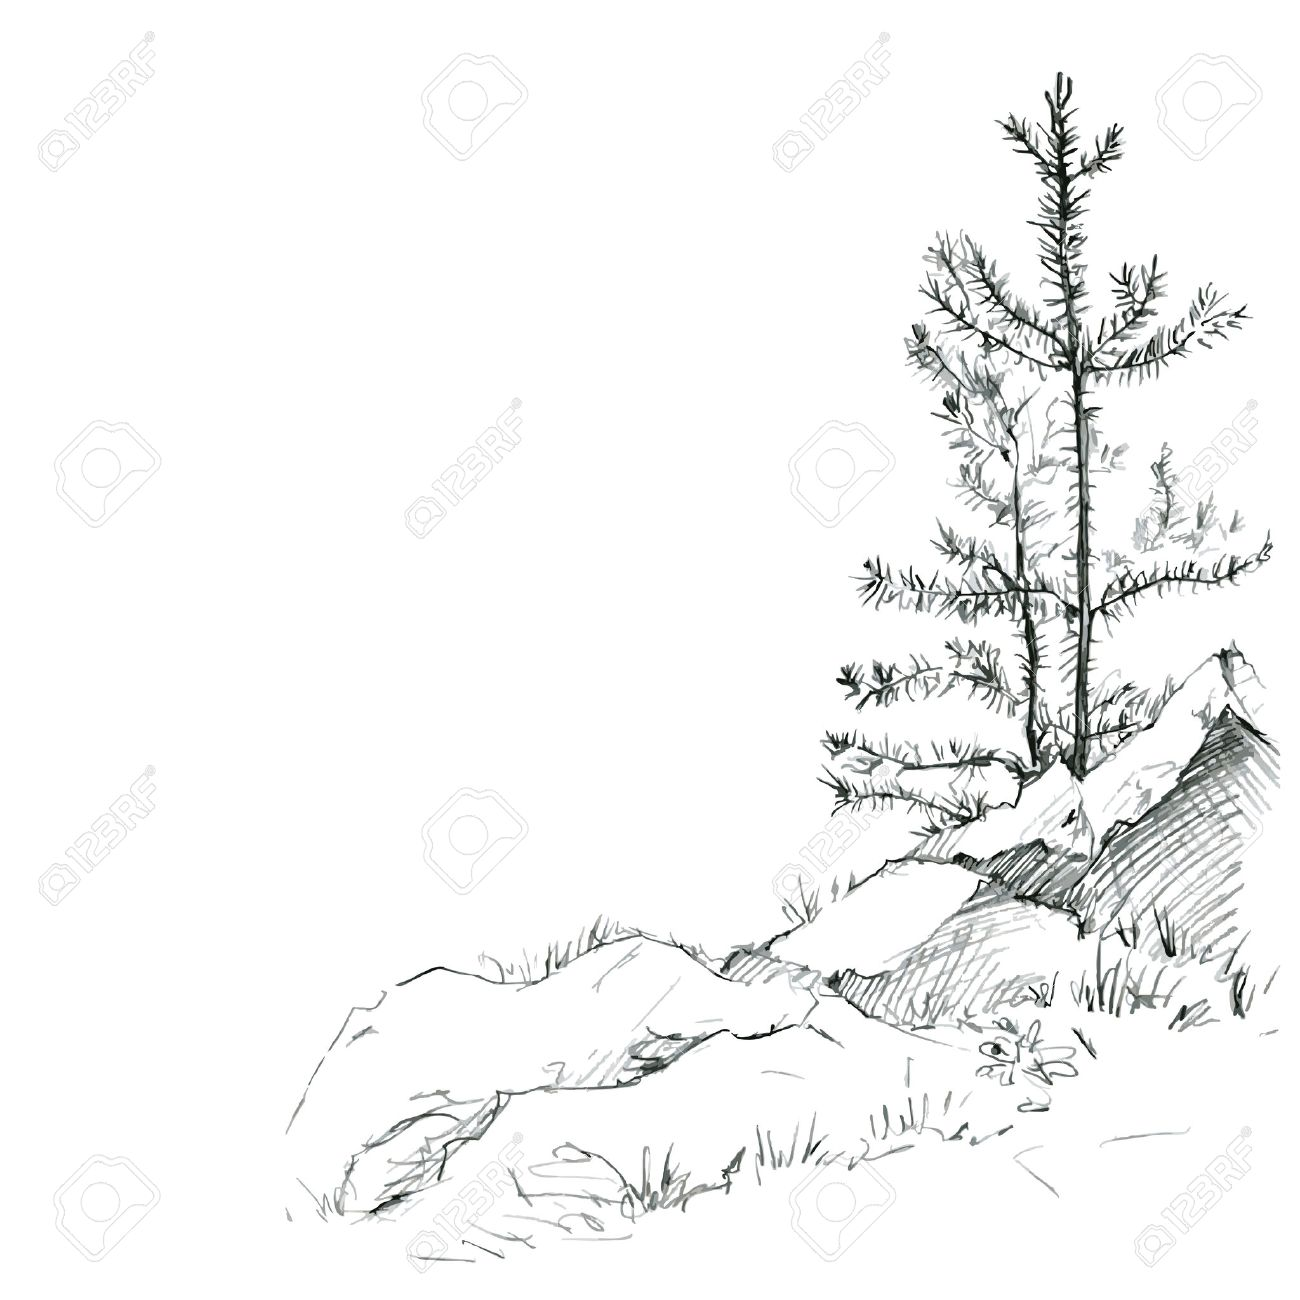 Vector young pine trees and rocks drawing by pencil sketch of wild nature forest sketch hand drawn vector illustration